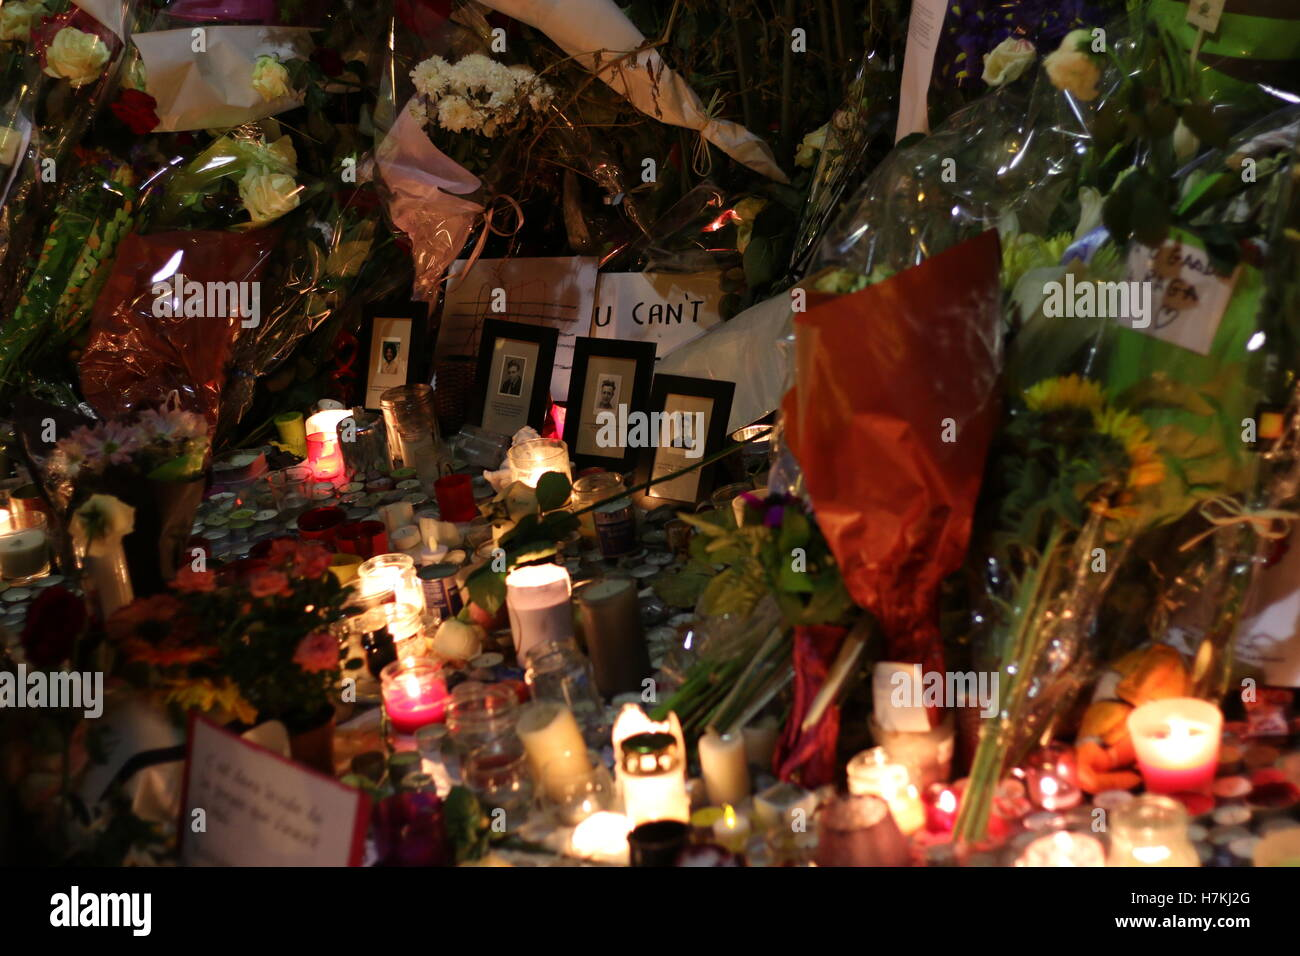 A memorial is held for those who died in the Paris terror attacks - Stock Image